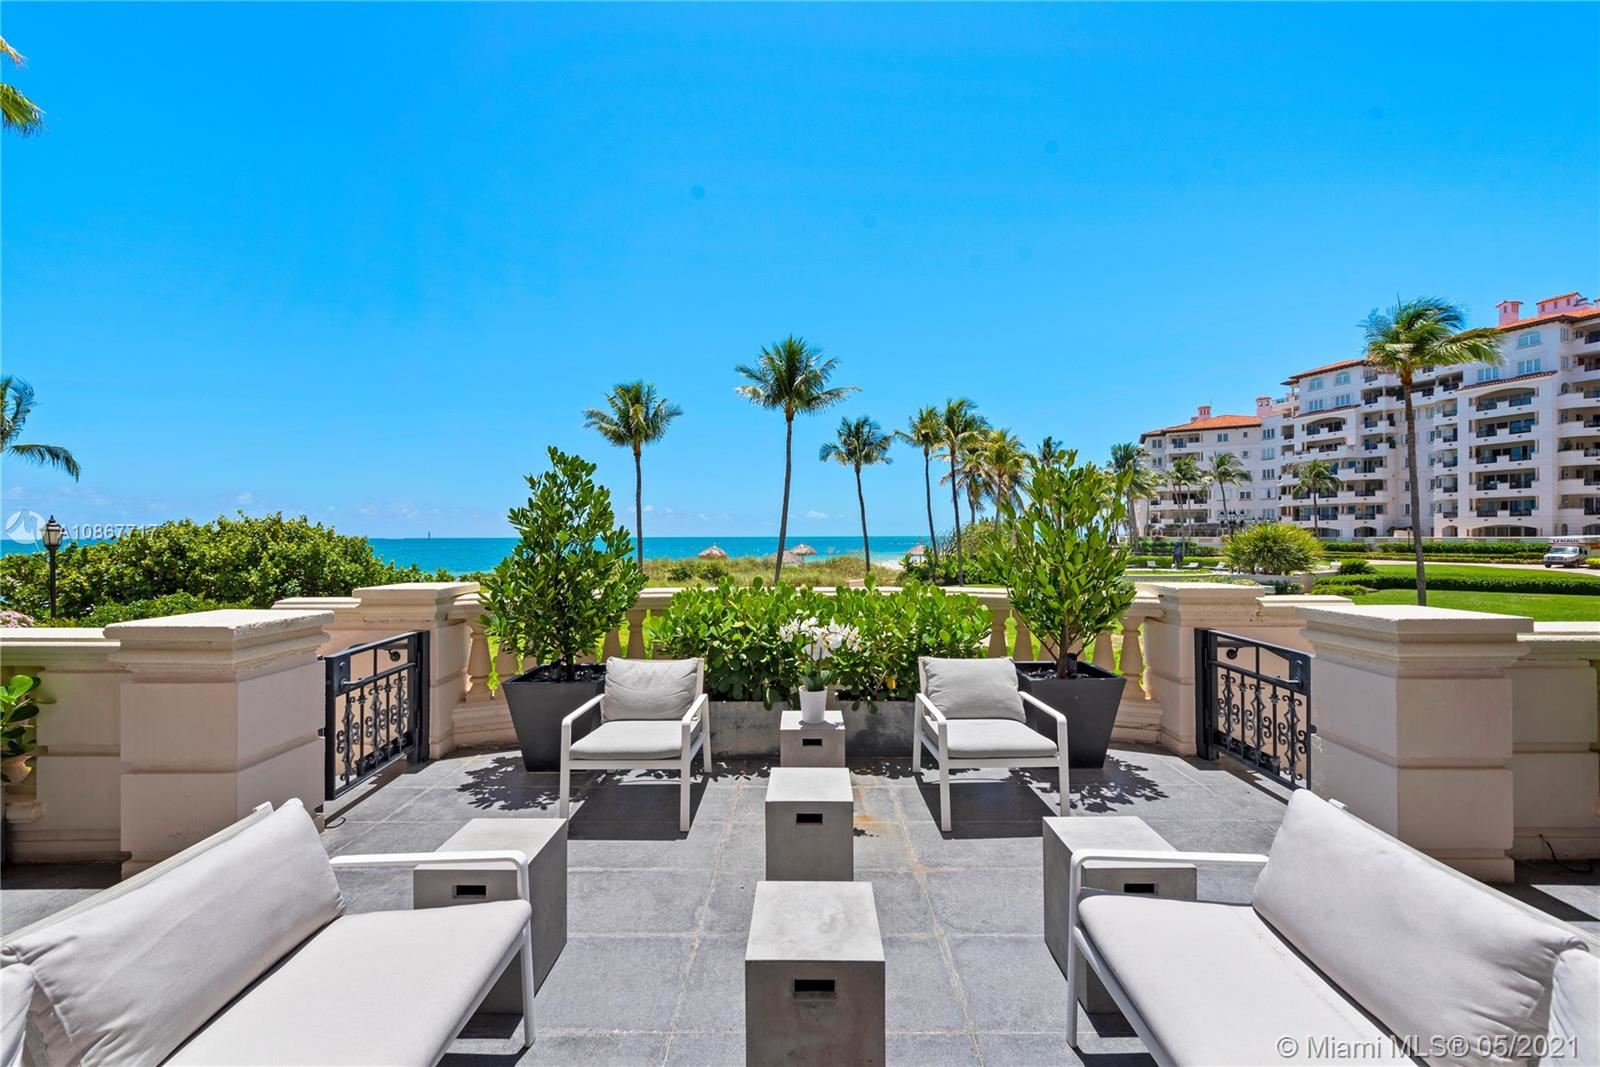 Photo 3 of Listing MLS a10867717 in 7716 FISHER ISLAND DR #7716 Miami FL 33109